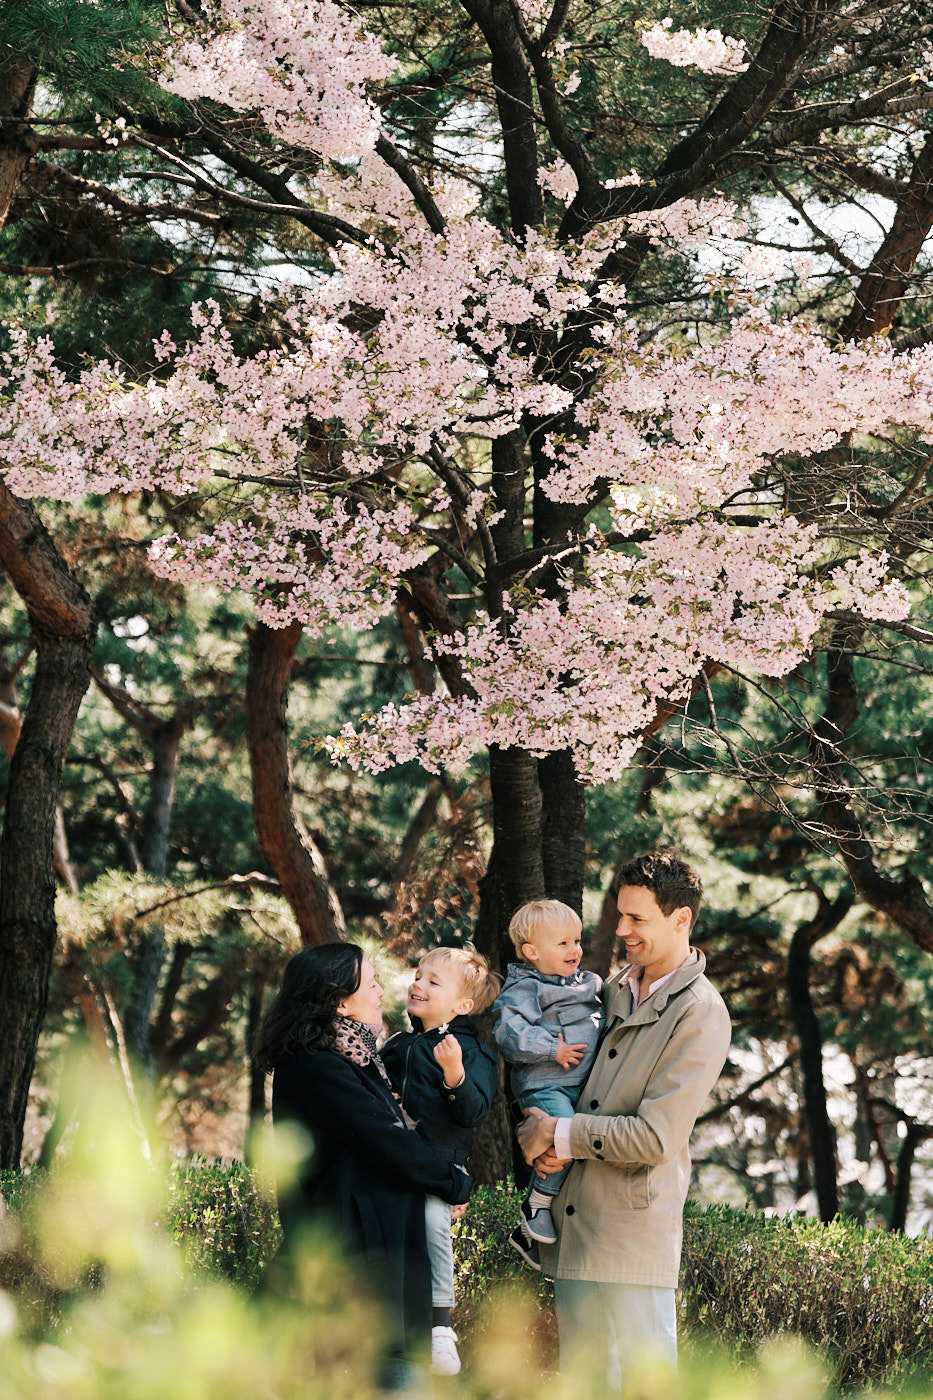 Family Photos with Cherry Blossoms in Seoul